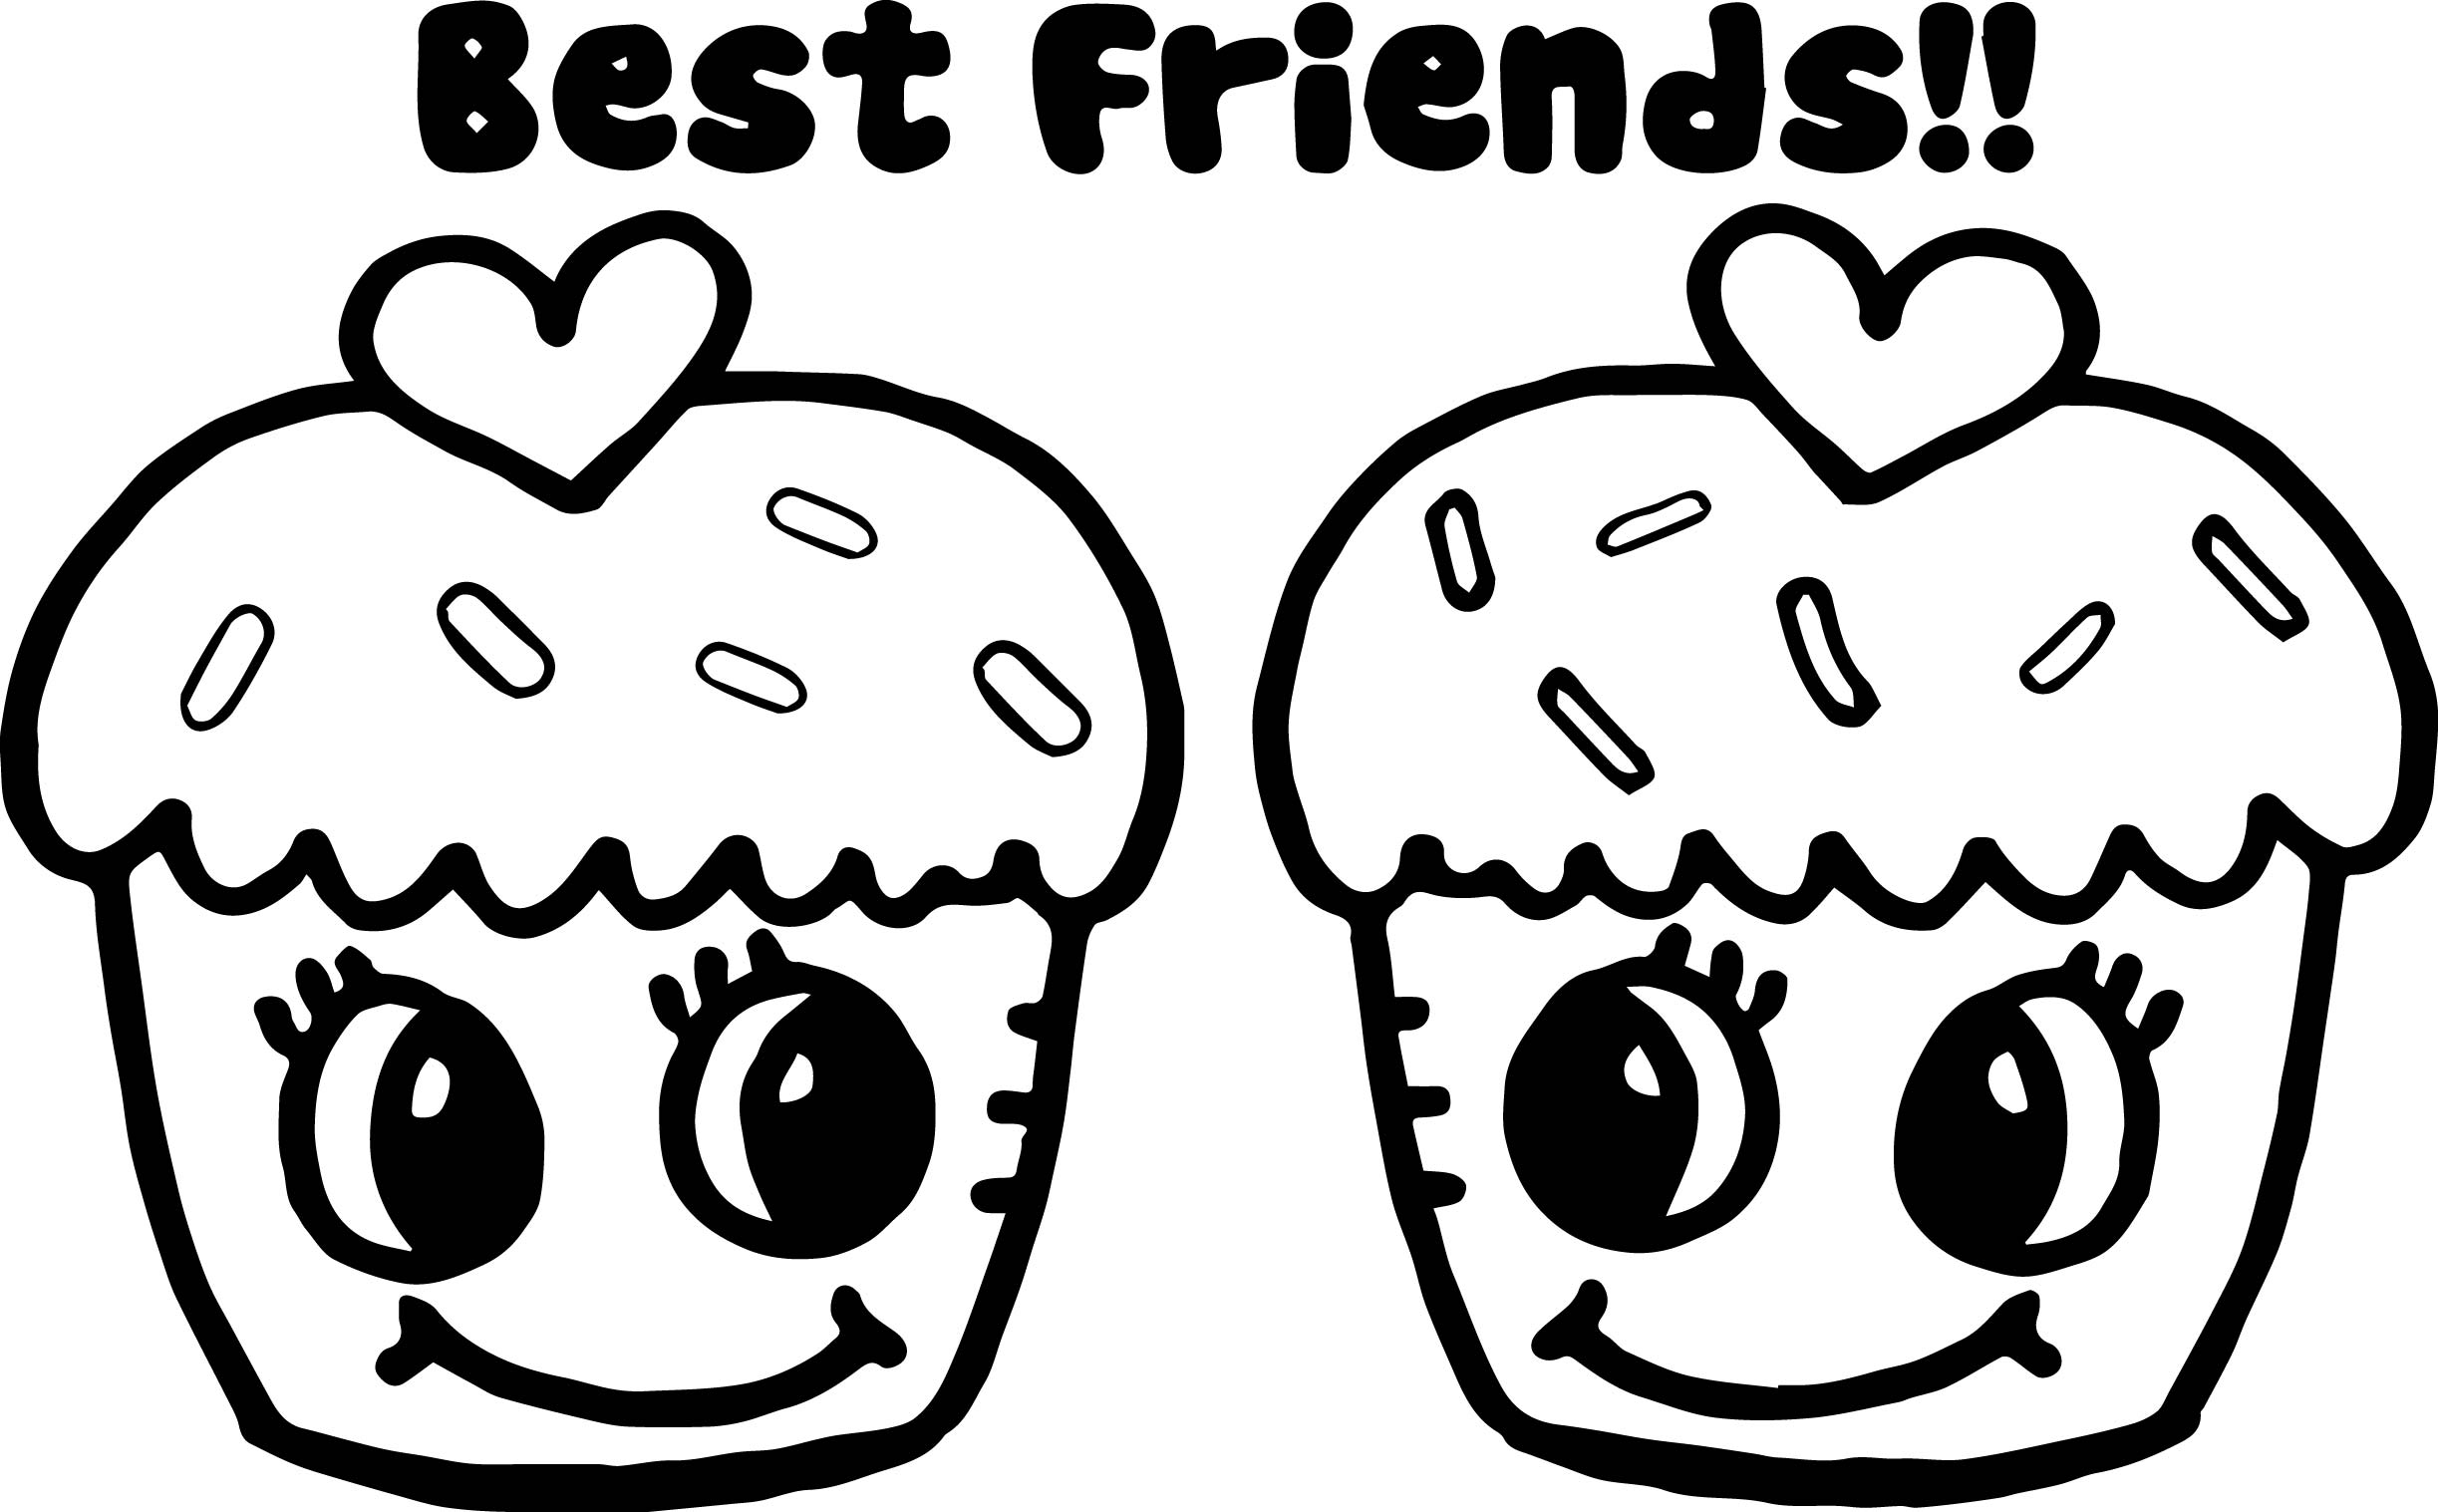 Cupcakes Best Friends Coloring Page | Wecoloringpage